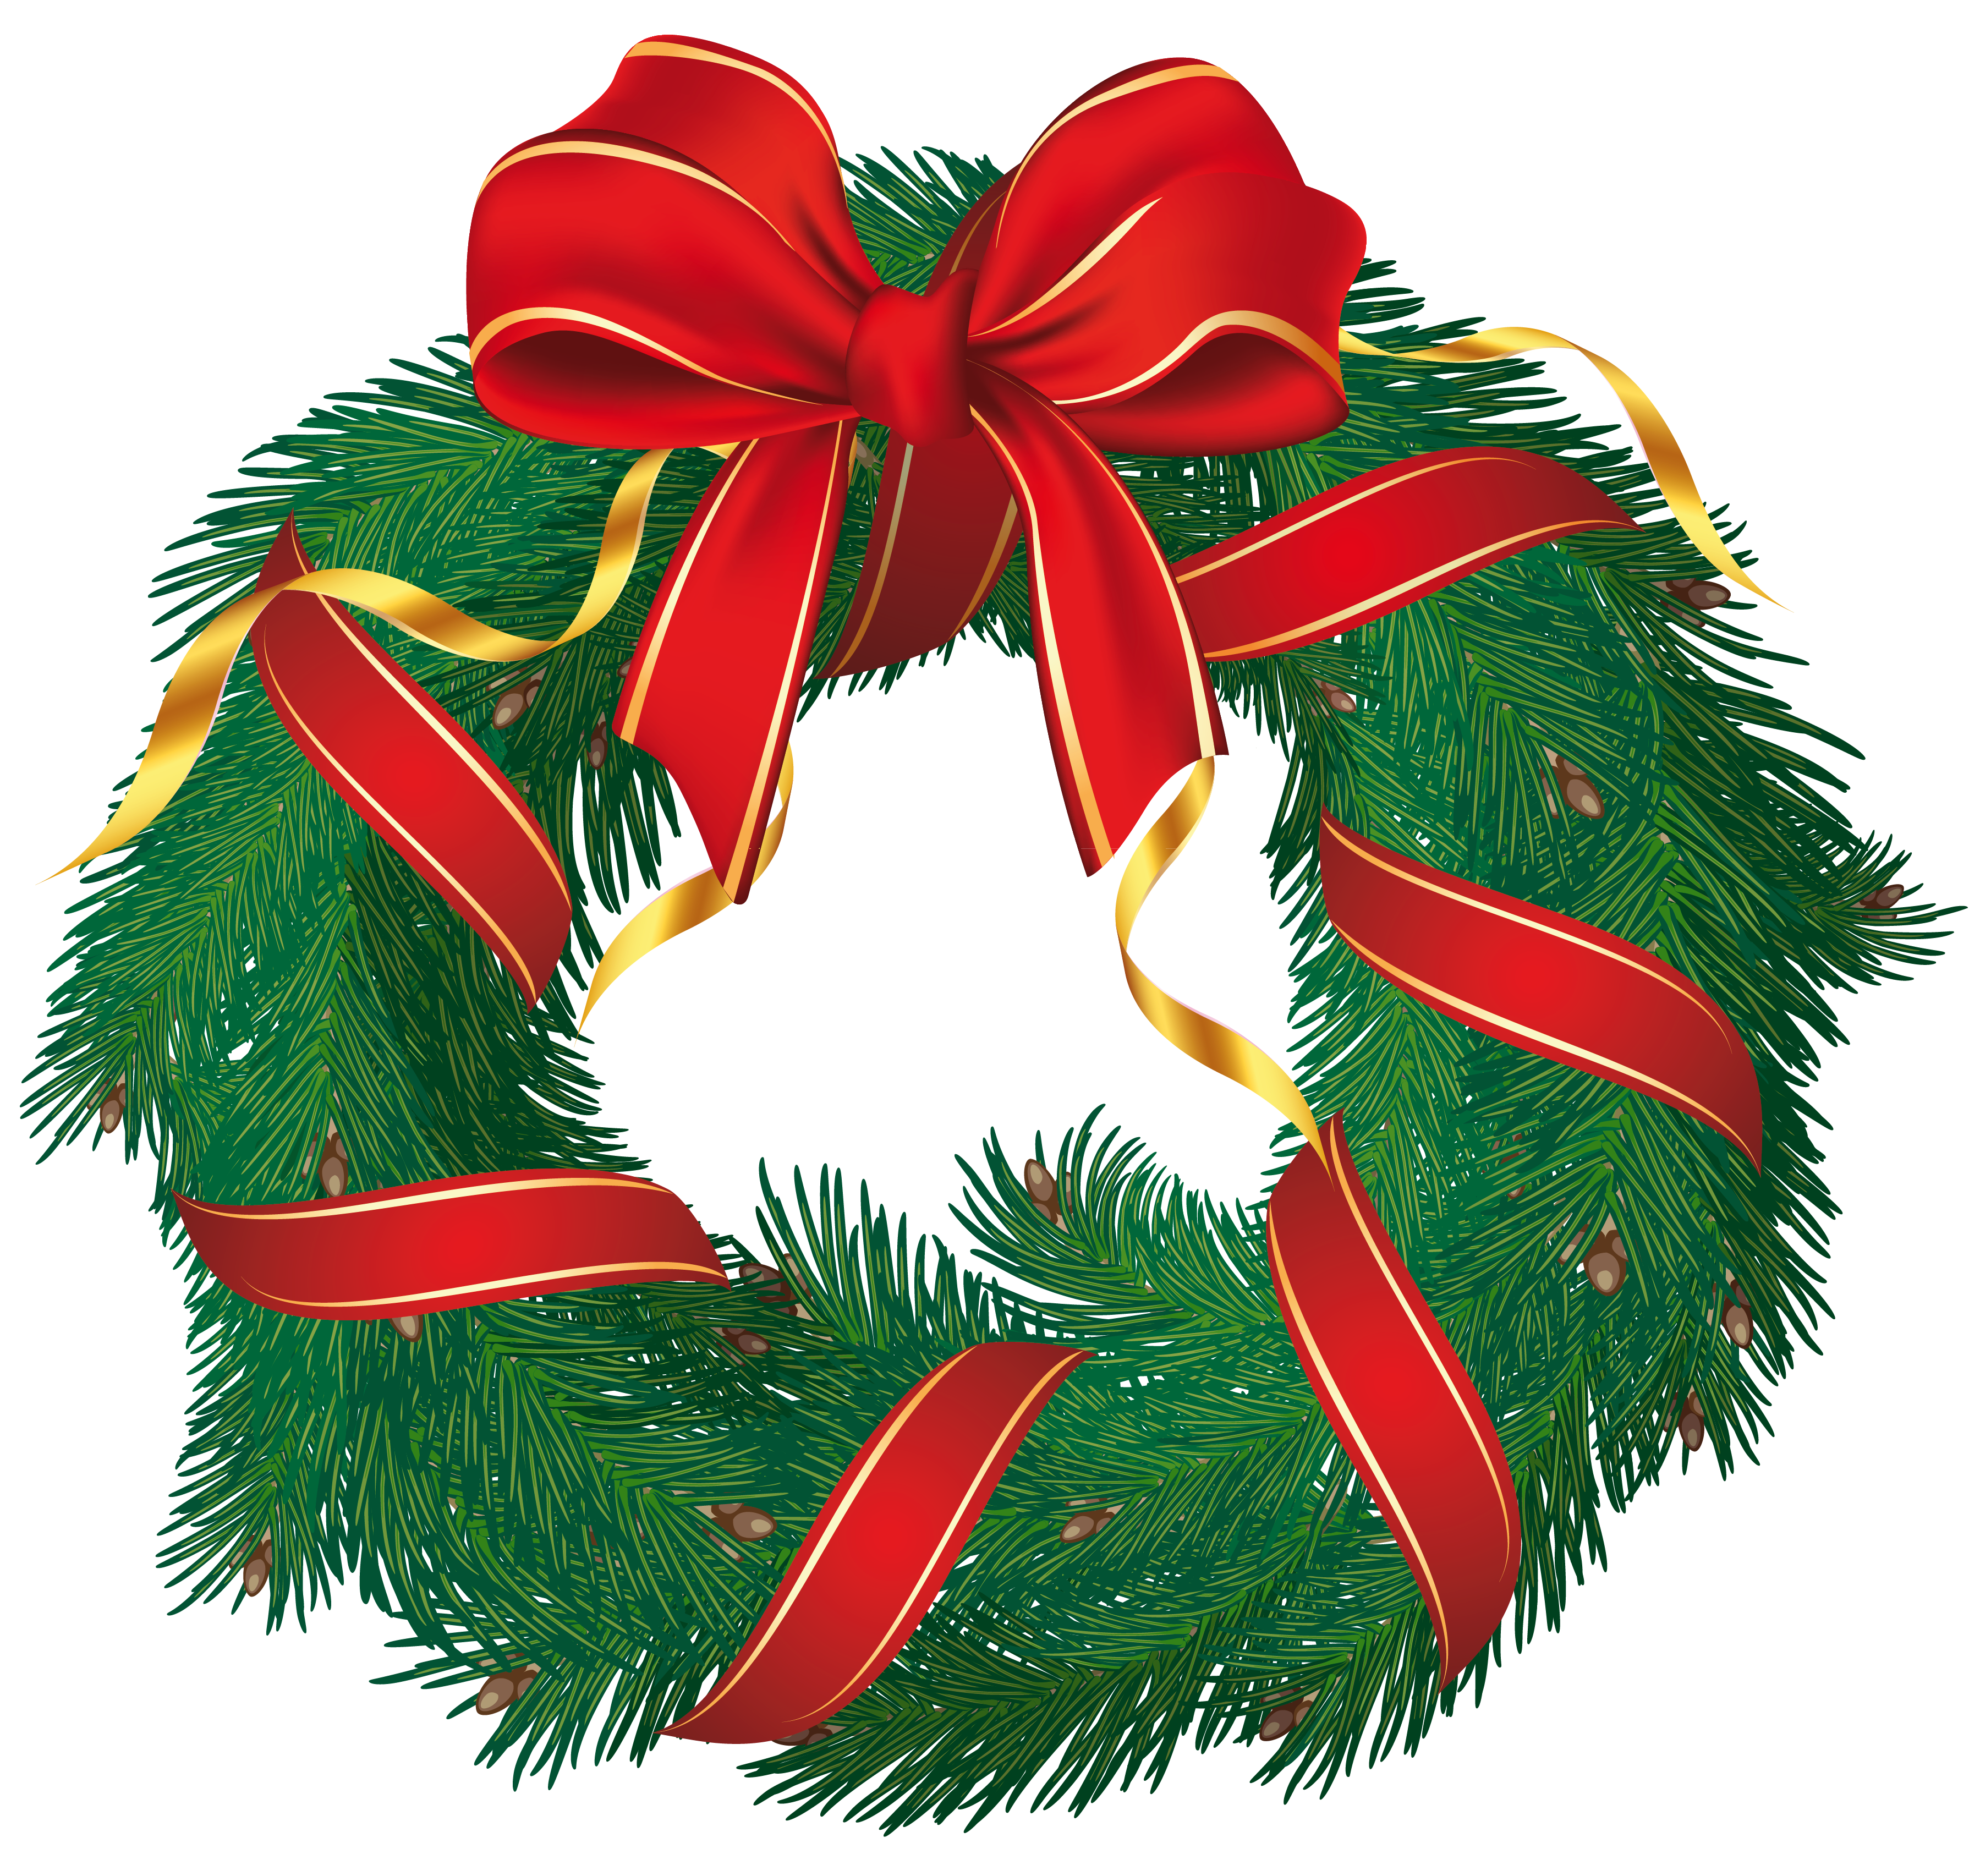 Christmas Wreath Pictures - Cliparts.co